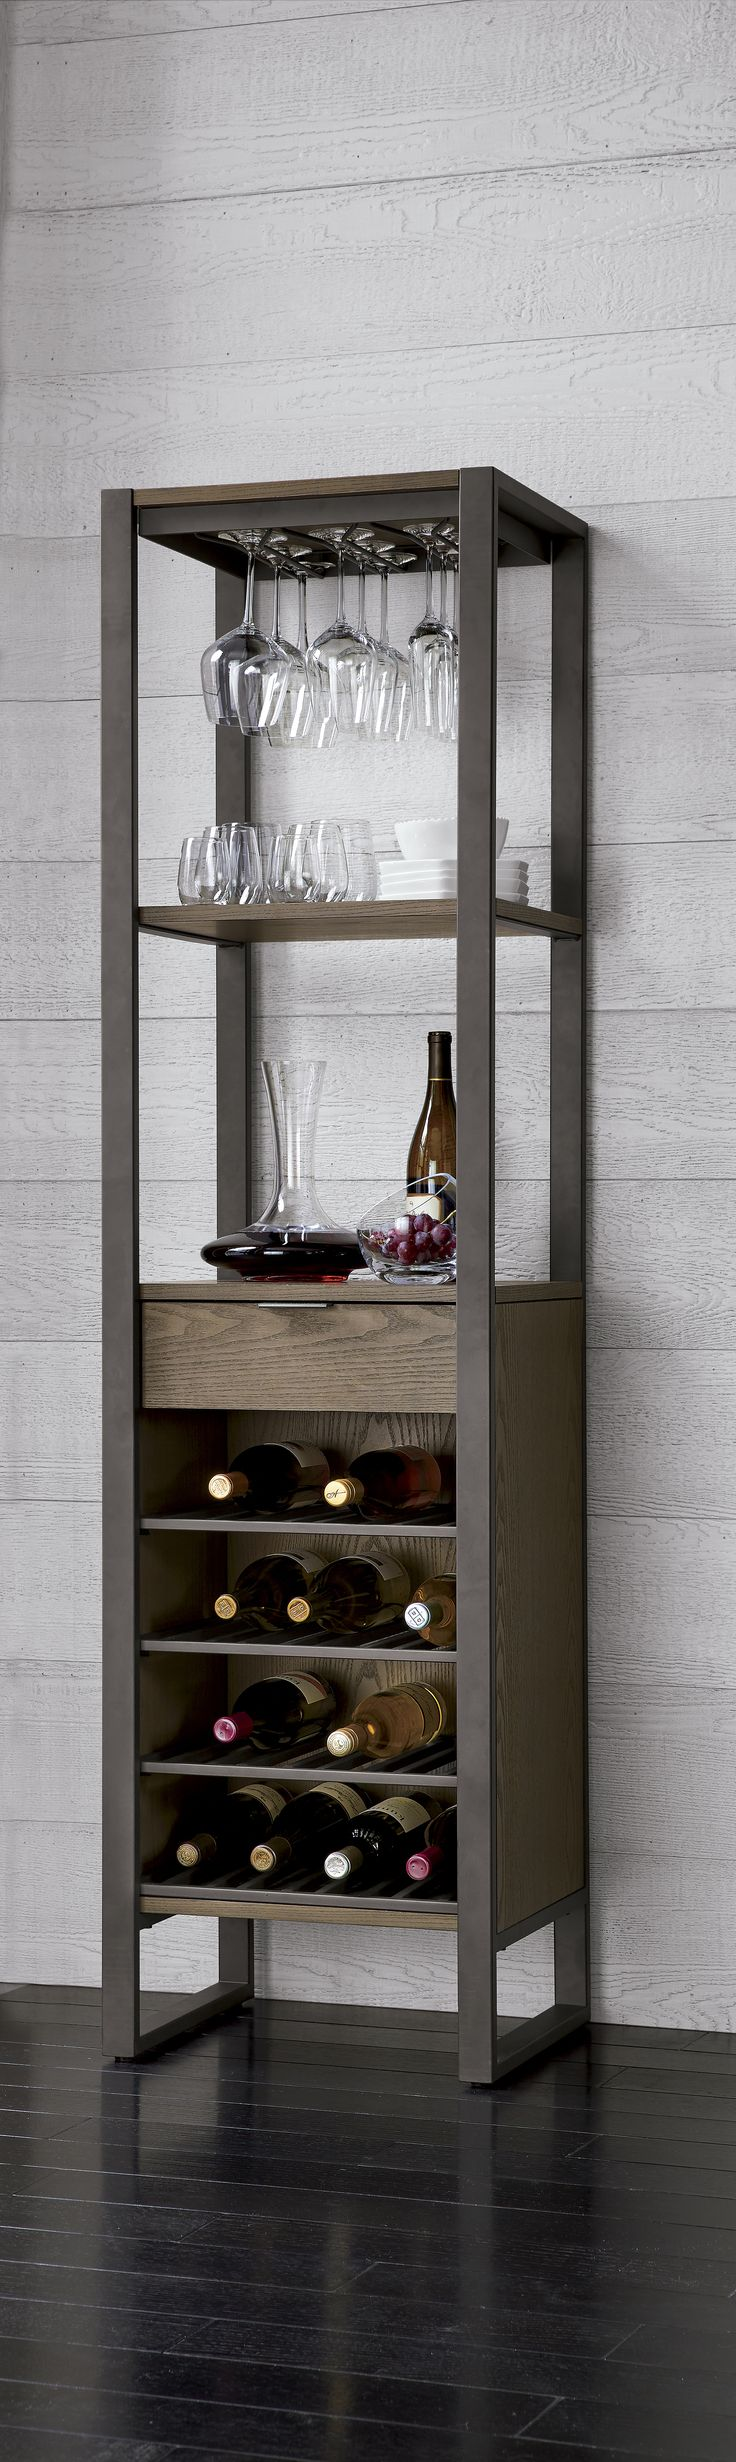 This all-in-one wine tower promises to be the center of the party. Crafted of ash veneer with a warm charcoal finish, this tall storage piece provides airy and open shelves to rack stemware and provide easy access to barware and bottles. A drawer at midpoint keeps recipes and bar tools tucked away, while down below, a wine grid stows up to 16 bottles.